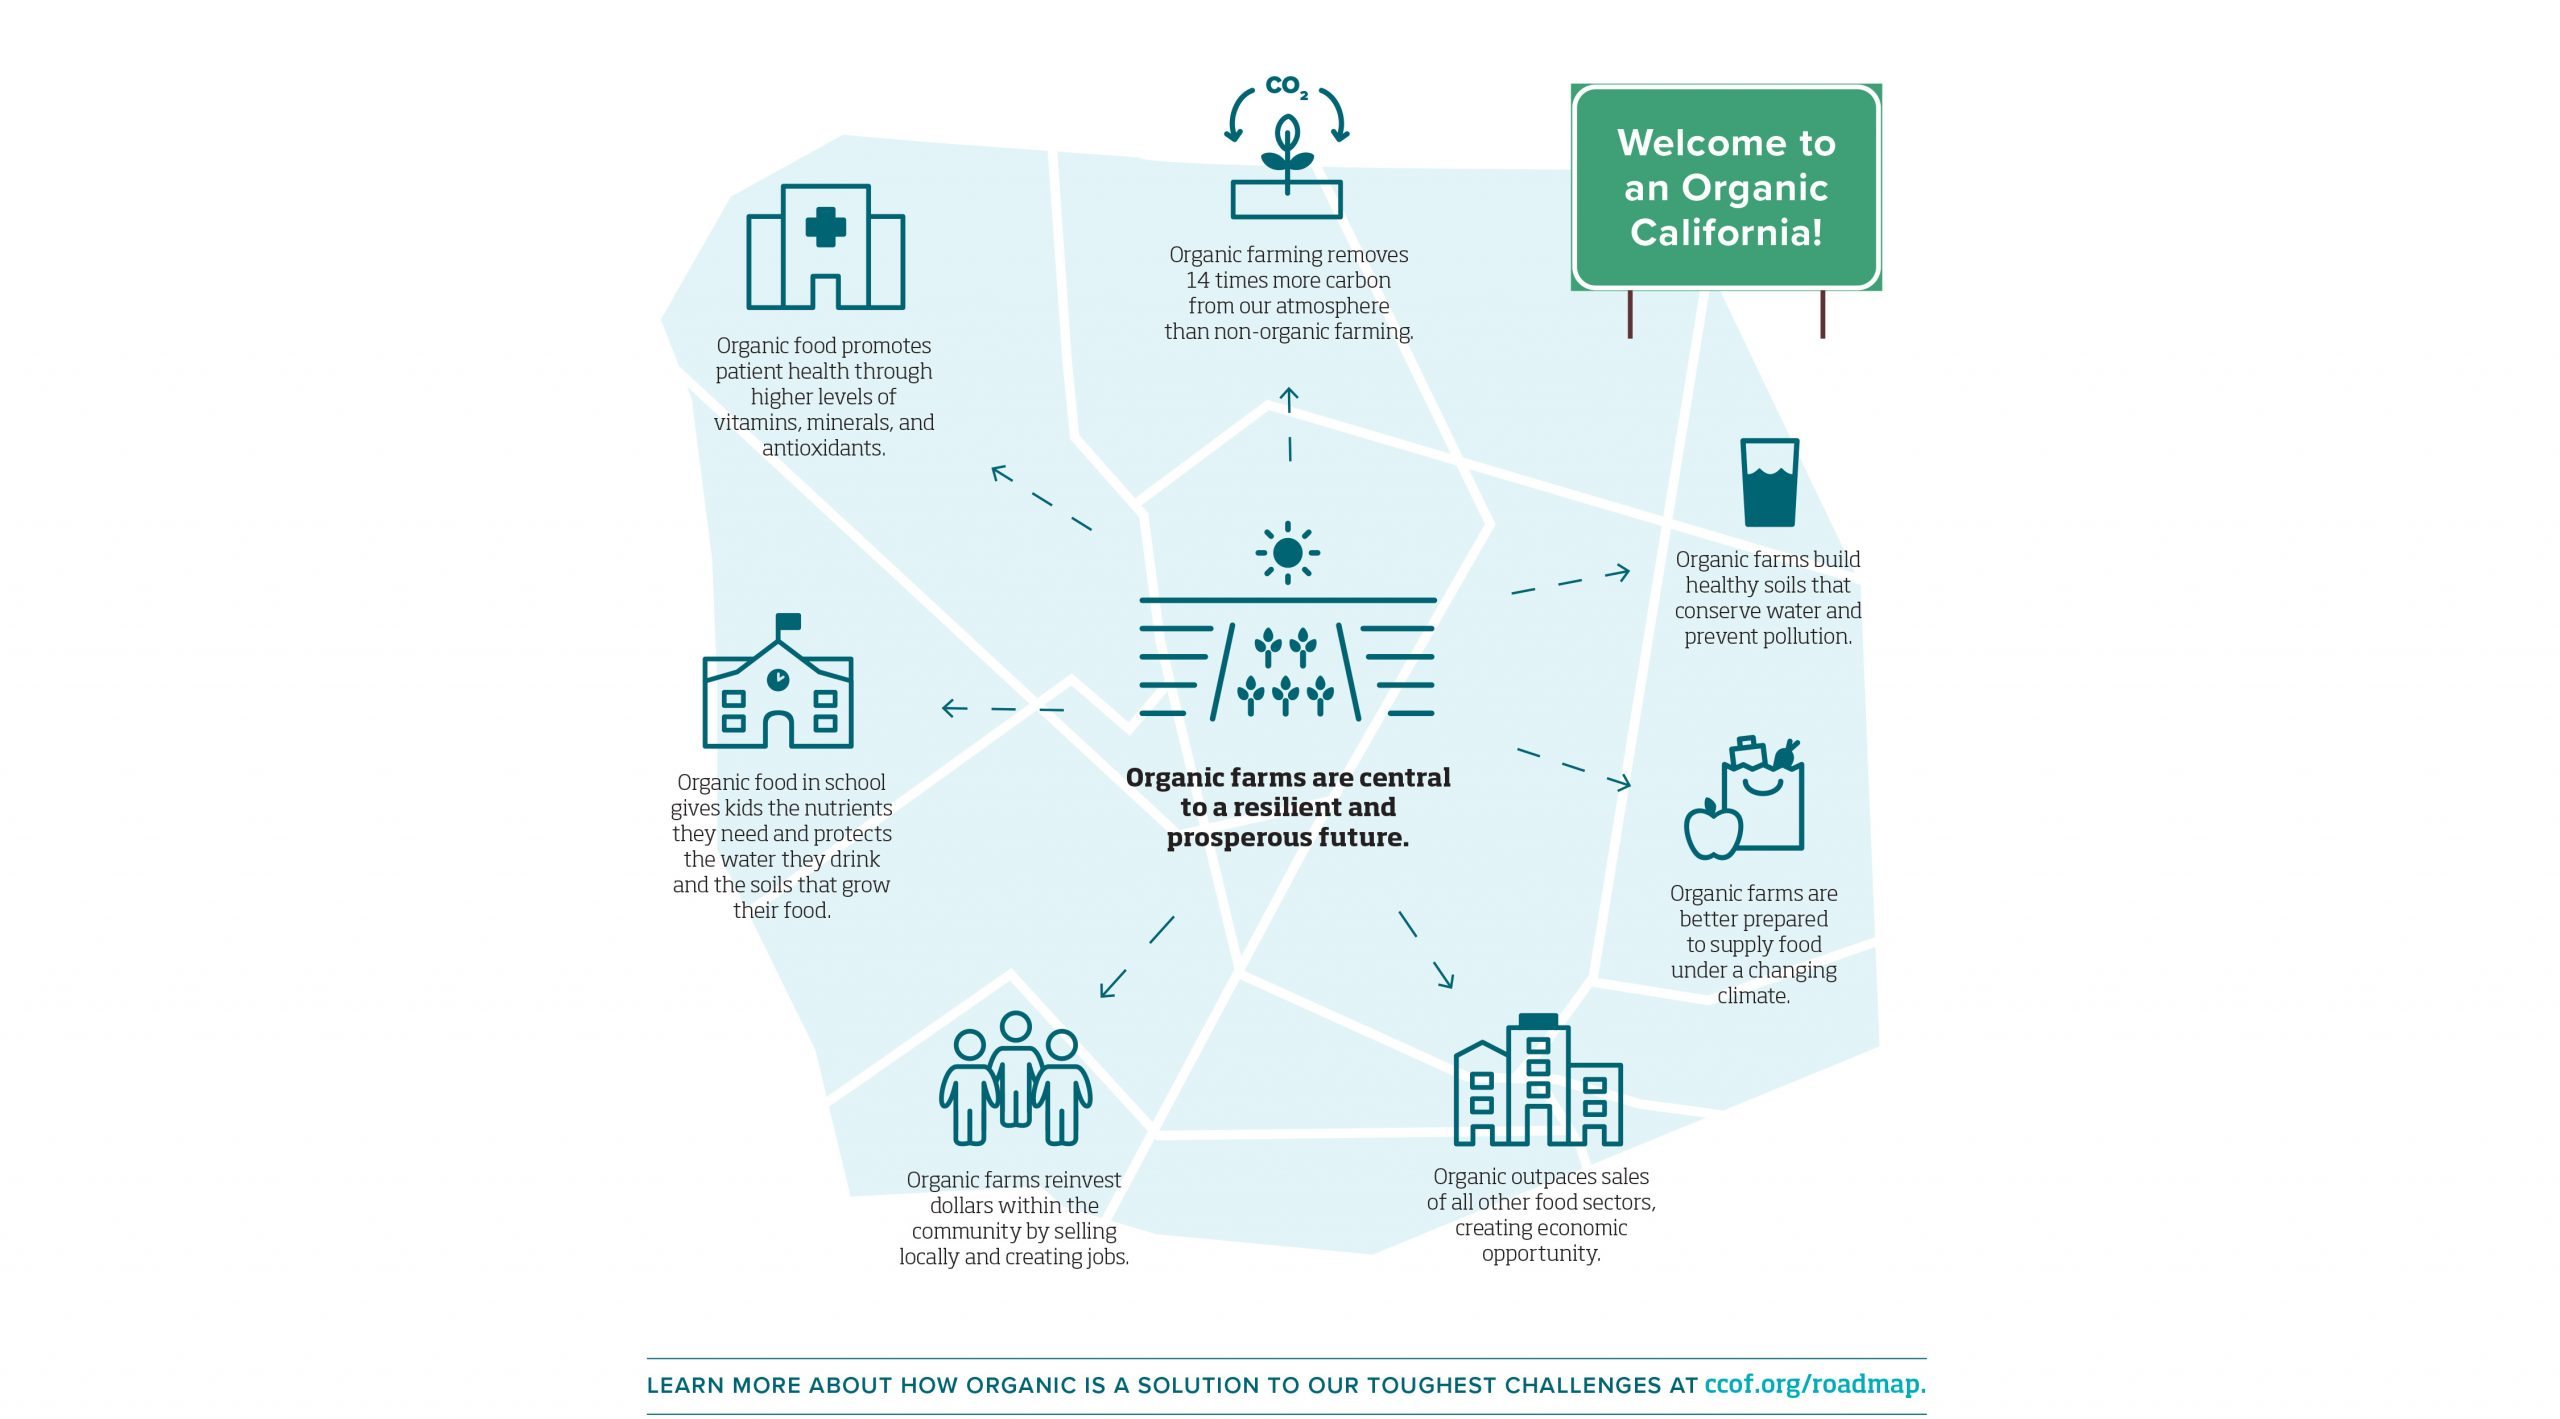 Roadmap to save California agriculture